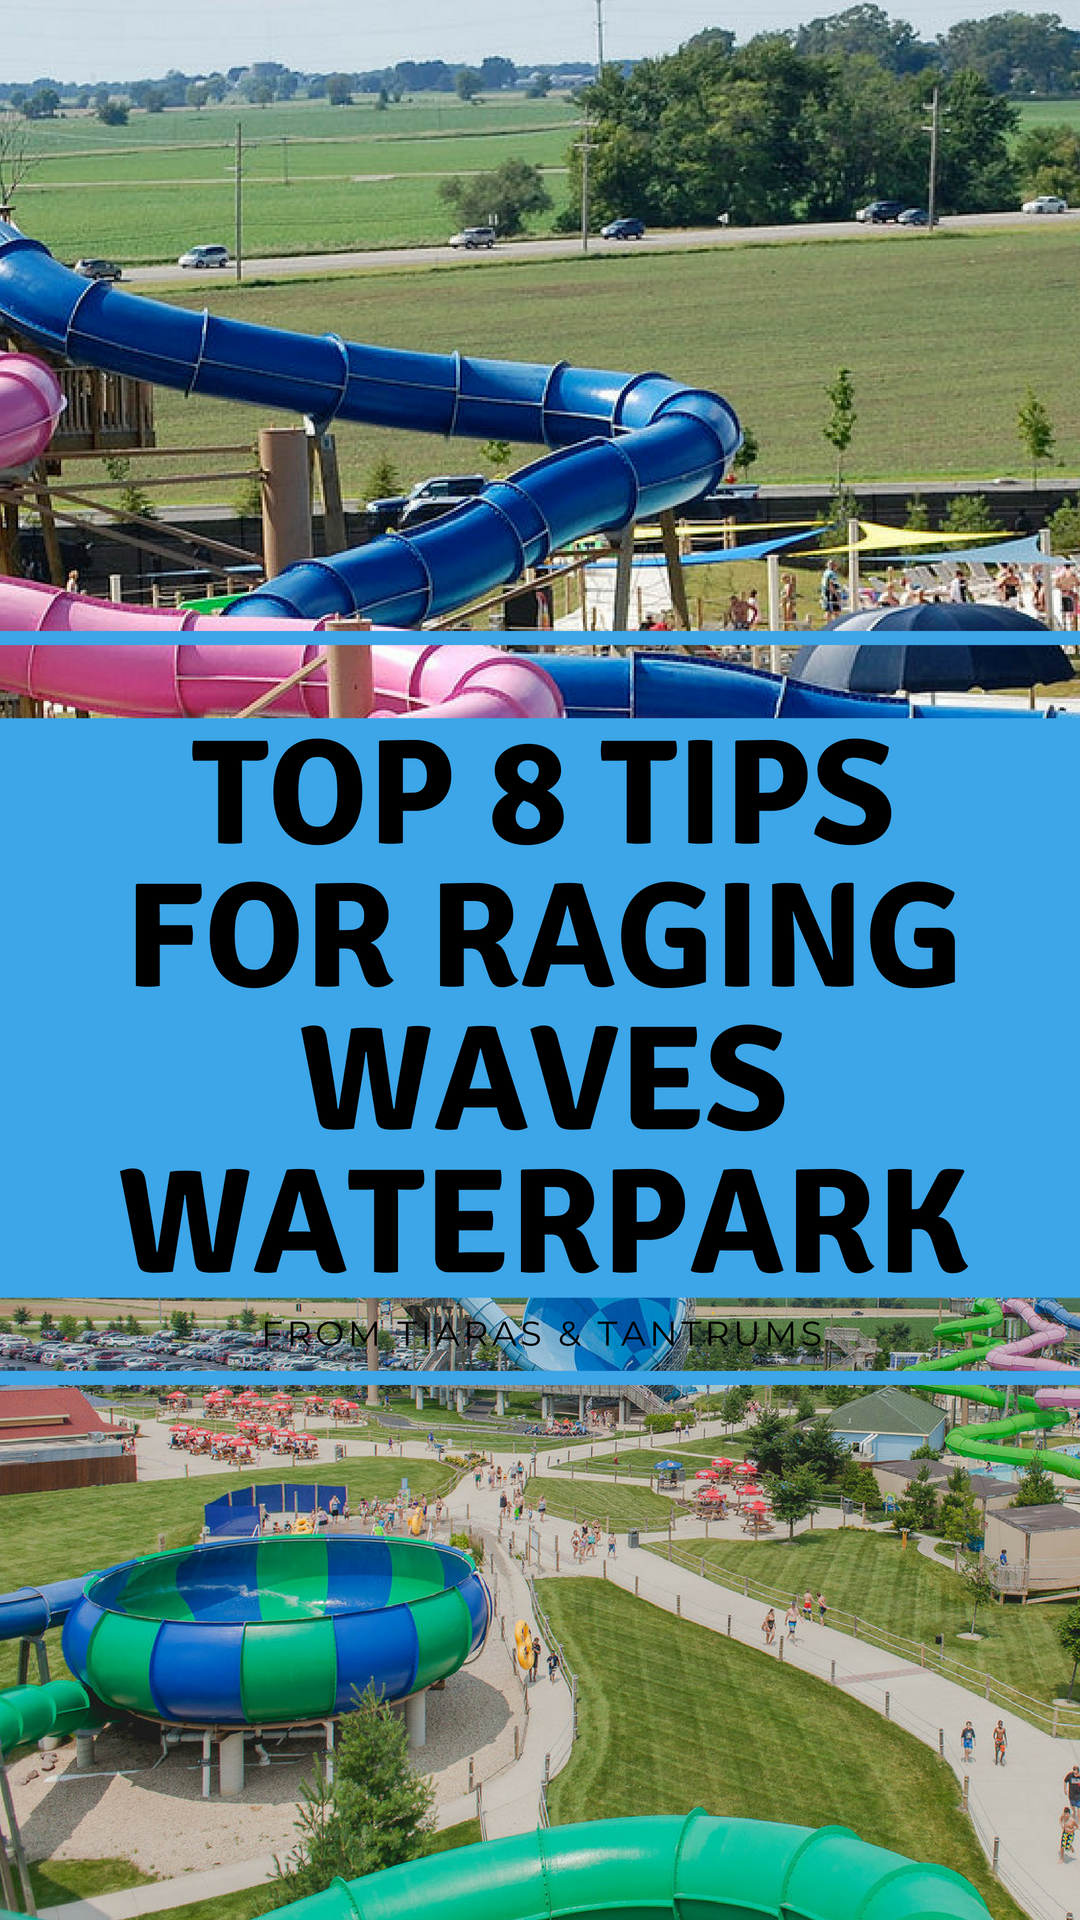 Top 8 Tips for Raging Waves WaterPark